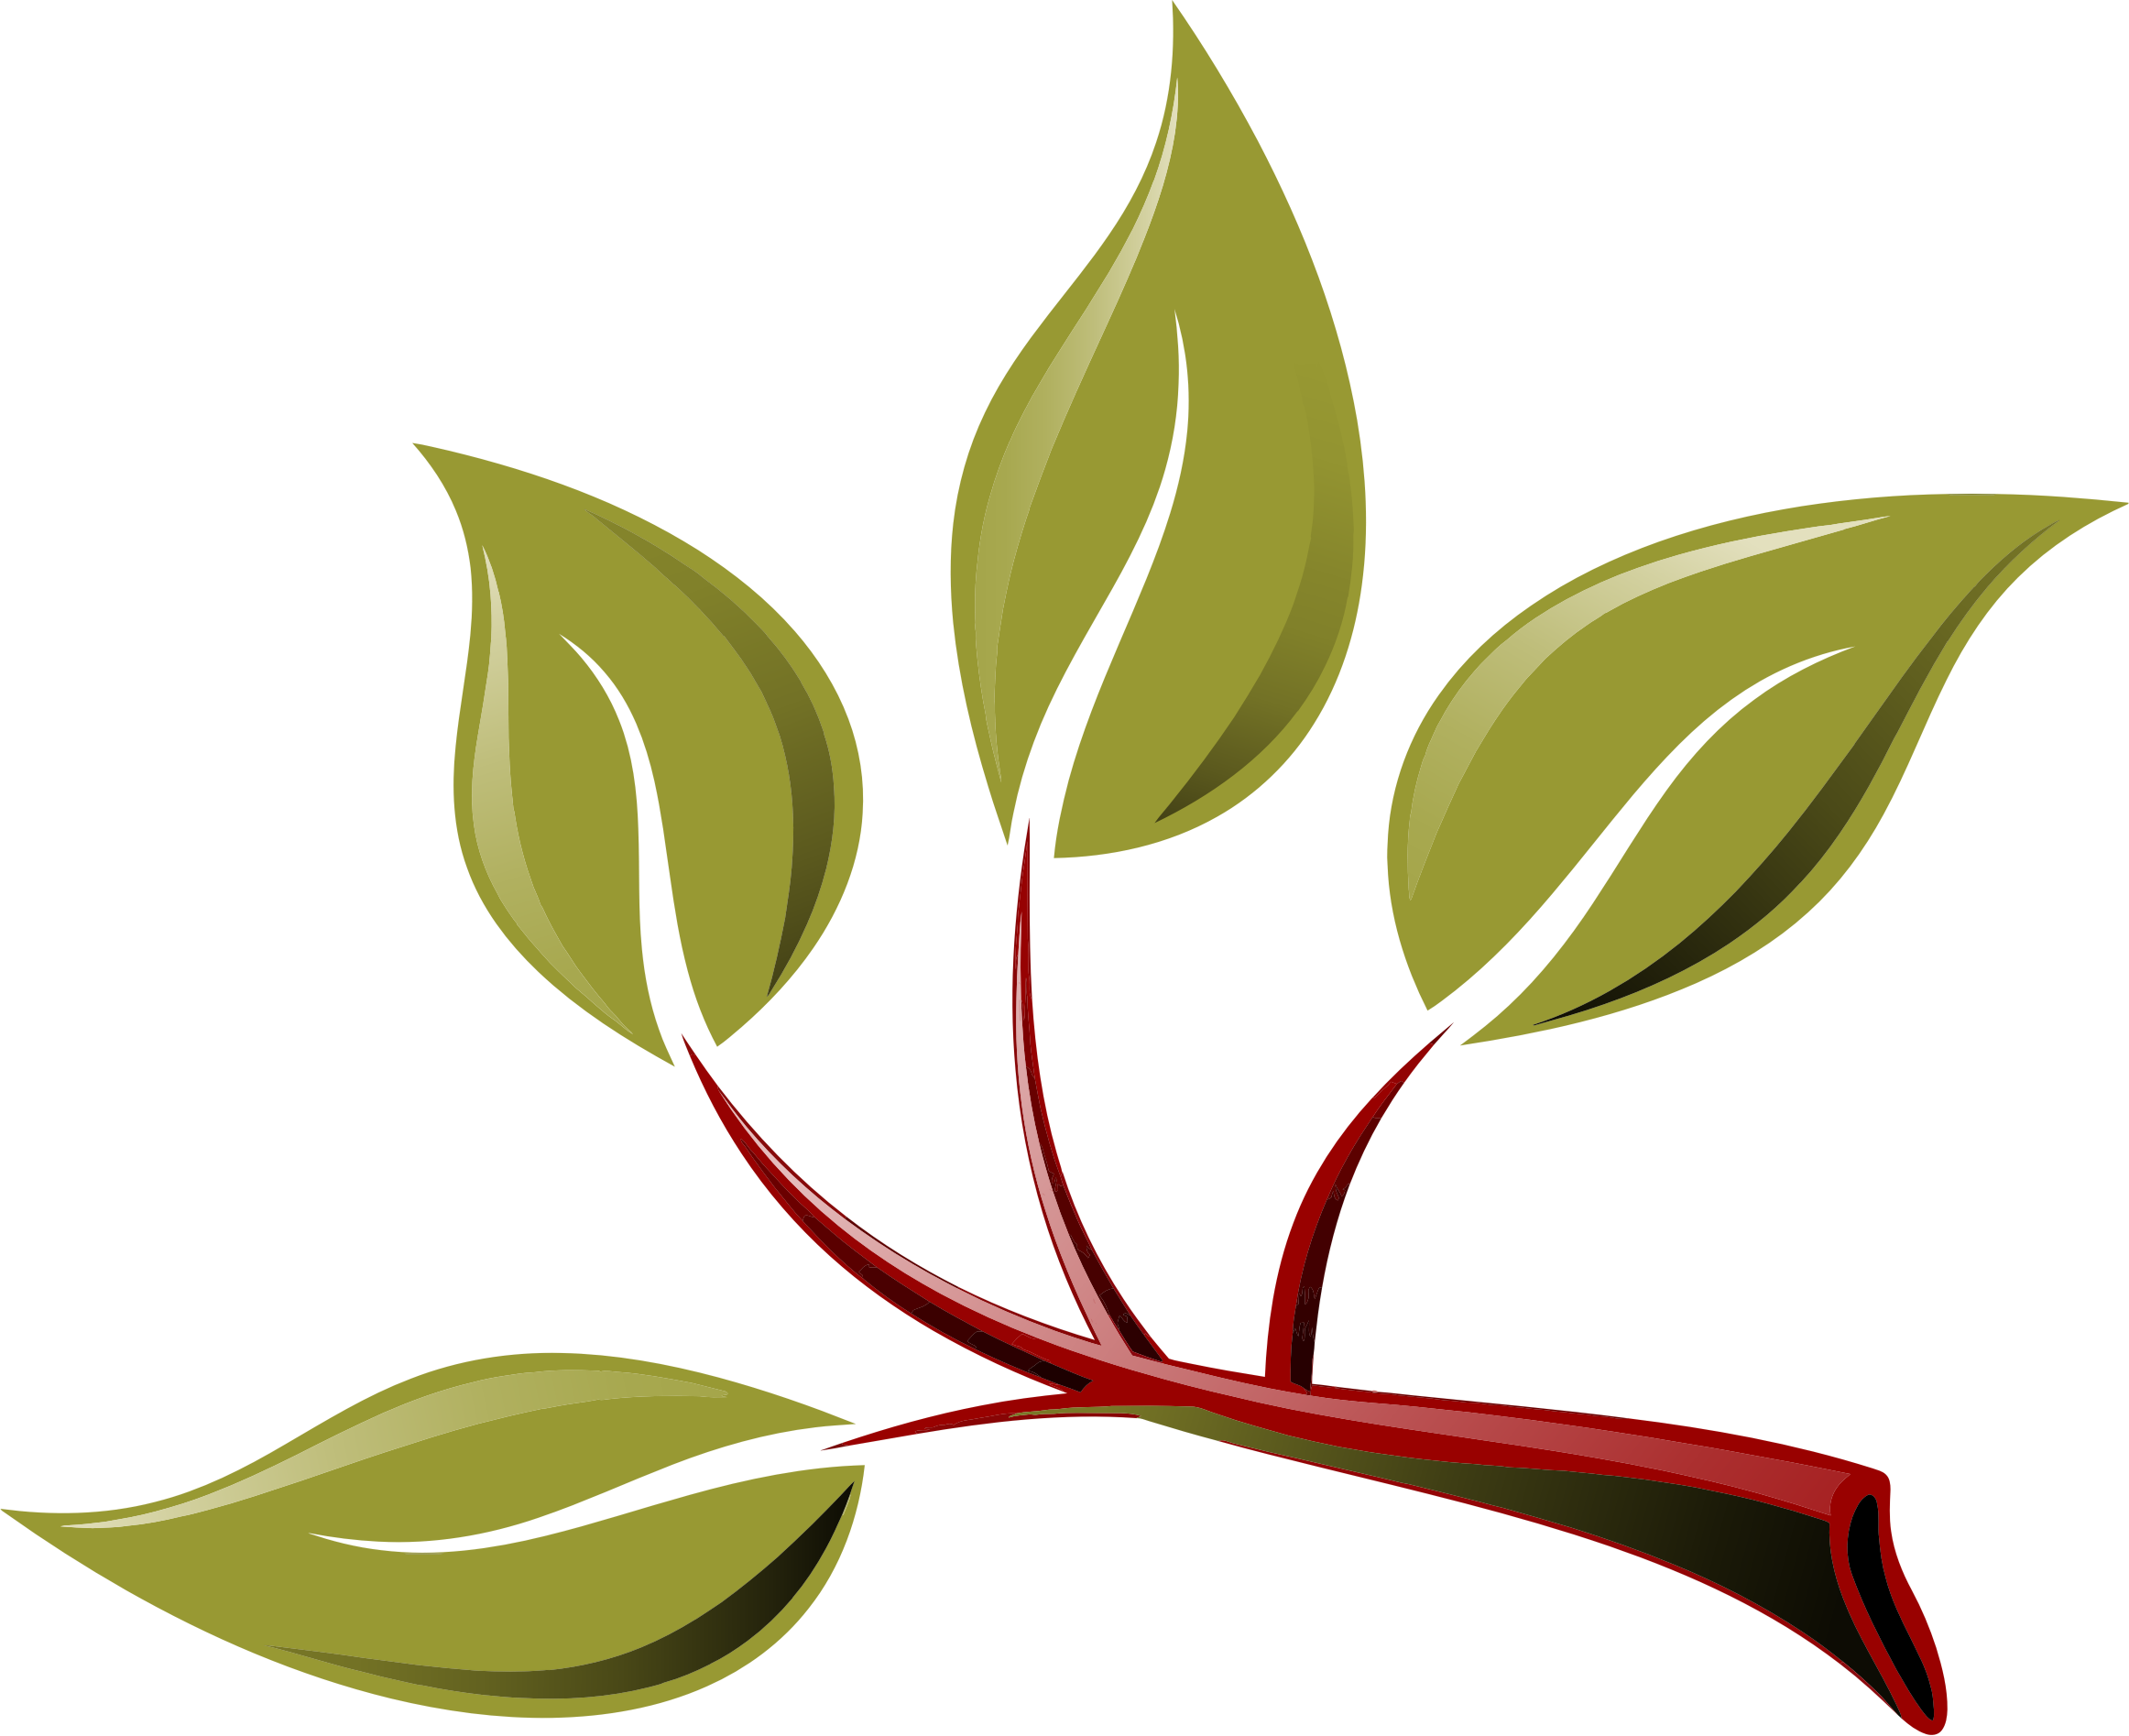 Season clipart branch. With leaves big image